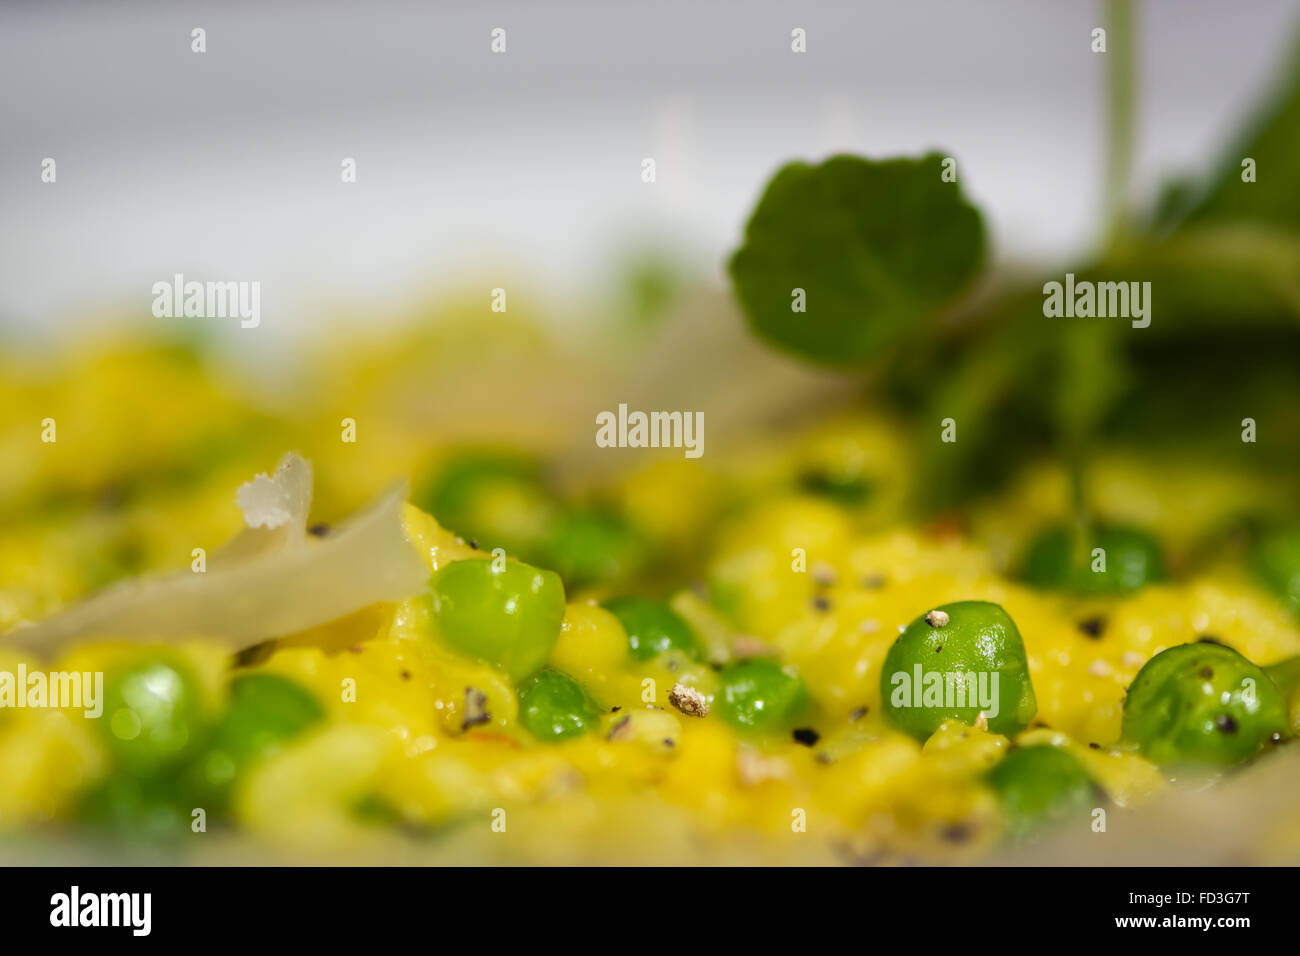 Leek, garden pea and saffron risotto close up. French restaurant prepared cuisine with bright yellow rice - Stock Image